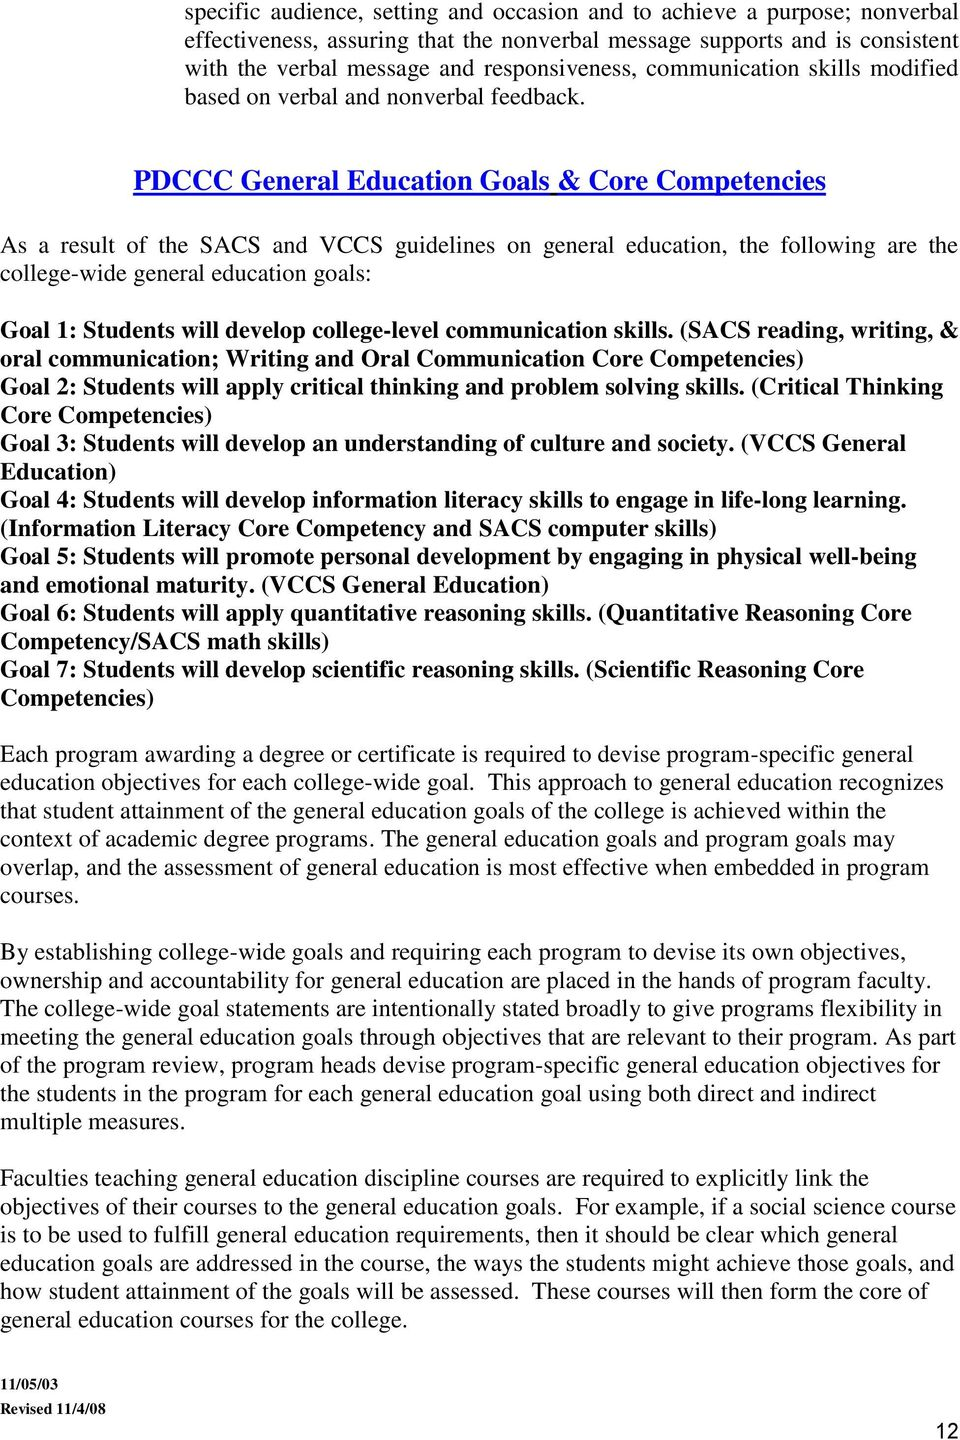 PDCCC General Education Goals & Core Competencies As a result of the SACS and VCCS guidelines on general education, the following are the college-wide general education goals: Goal 1: Students will